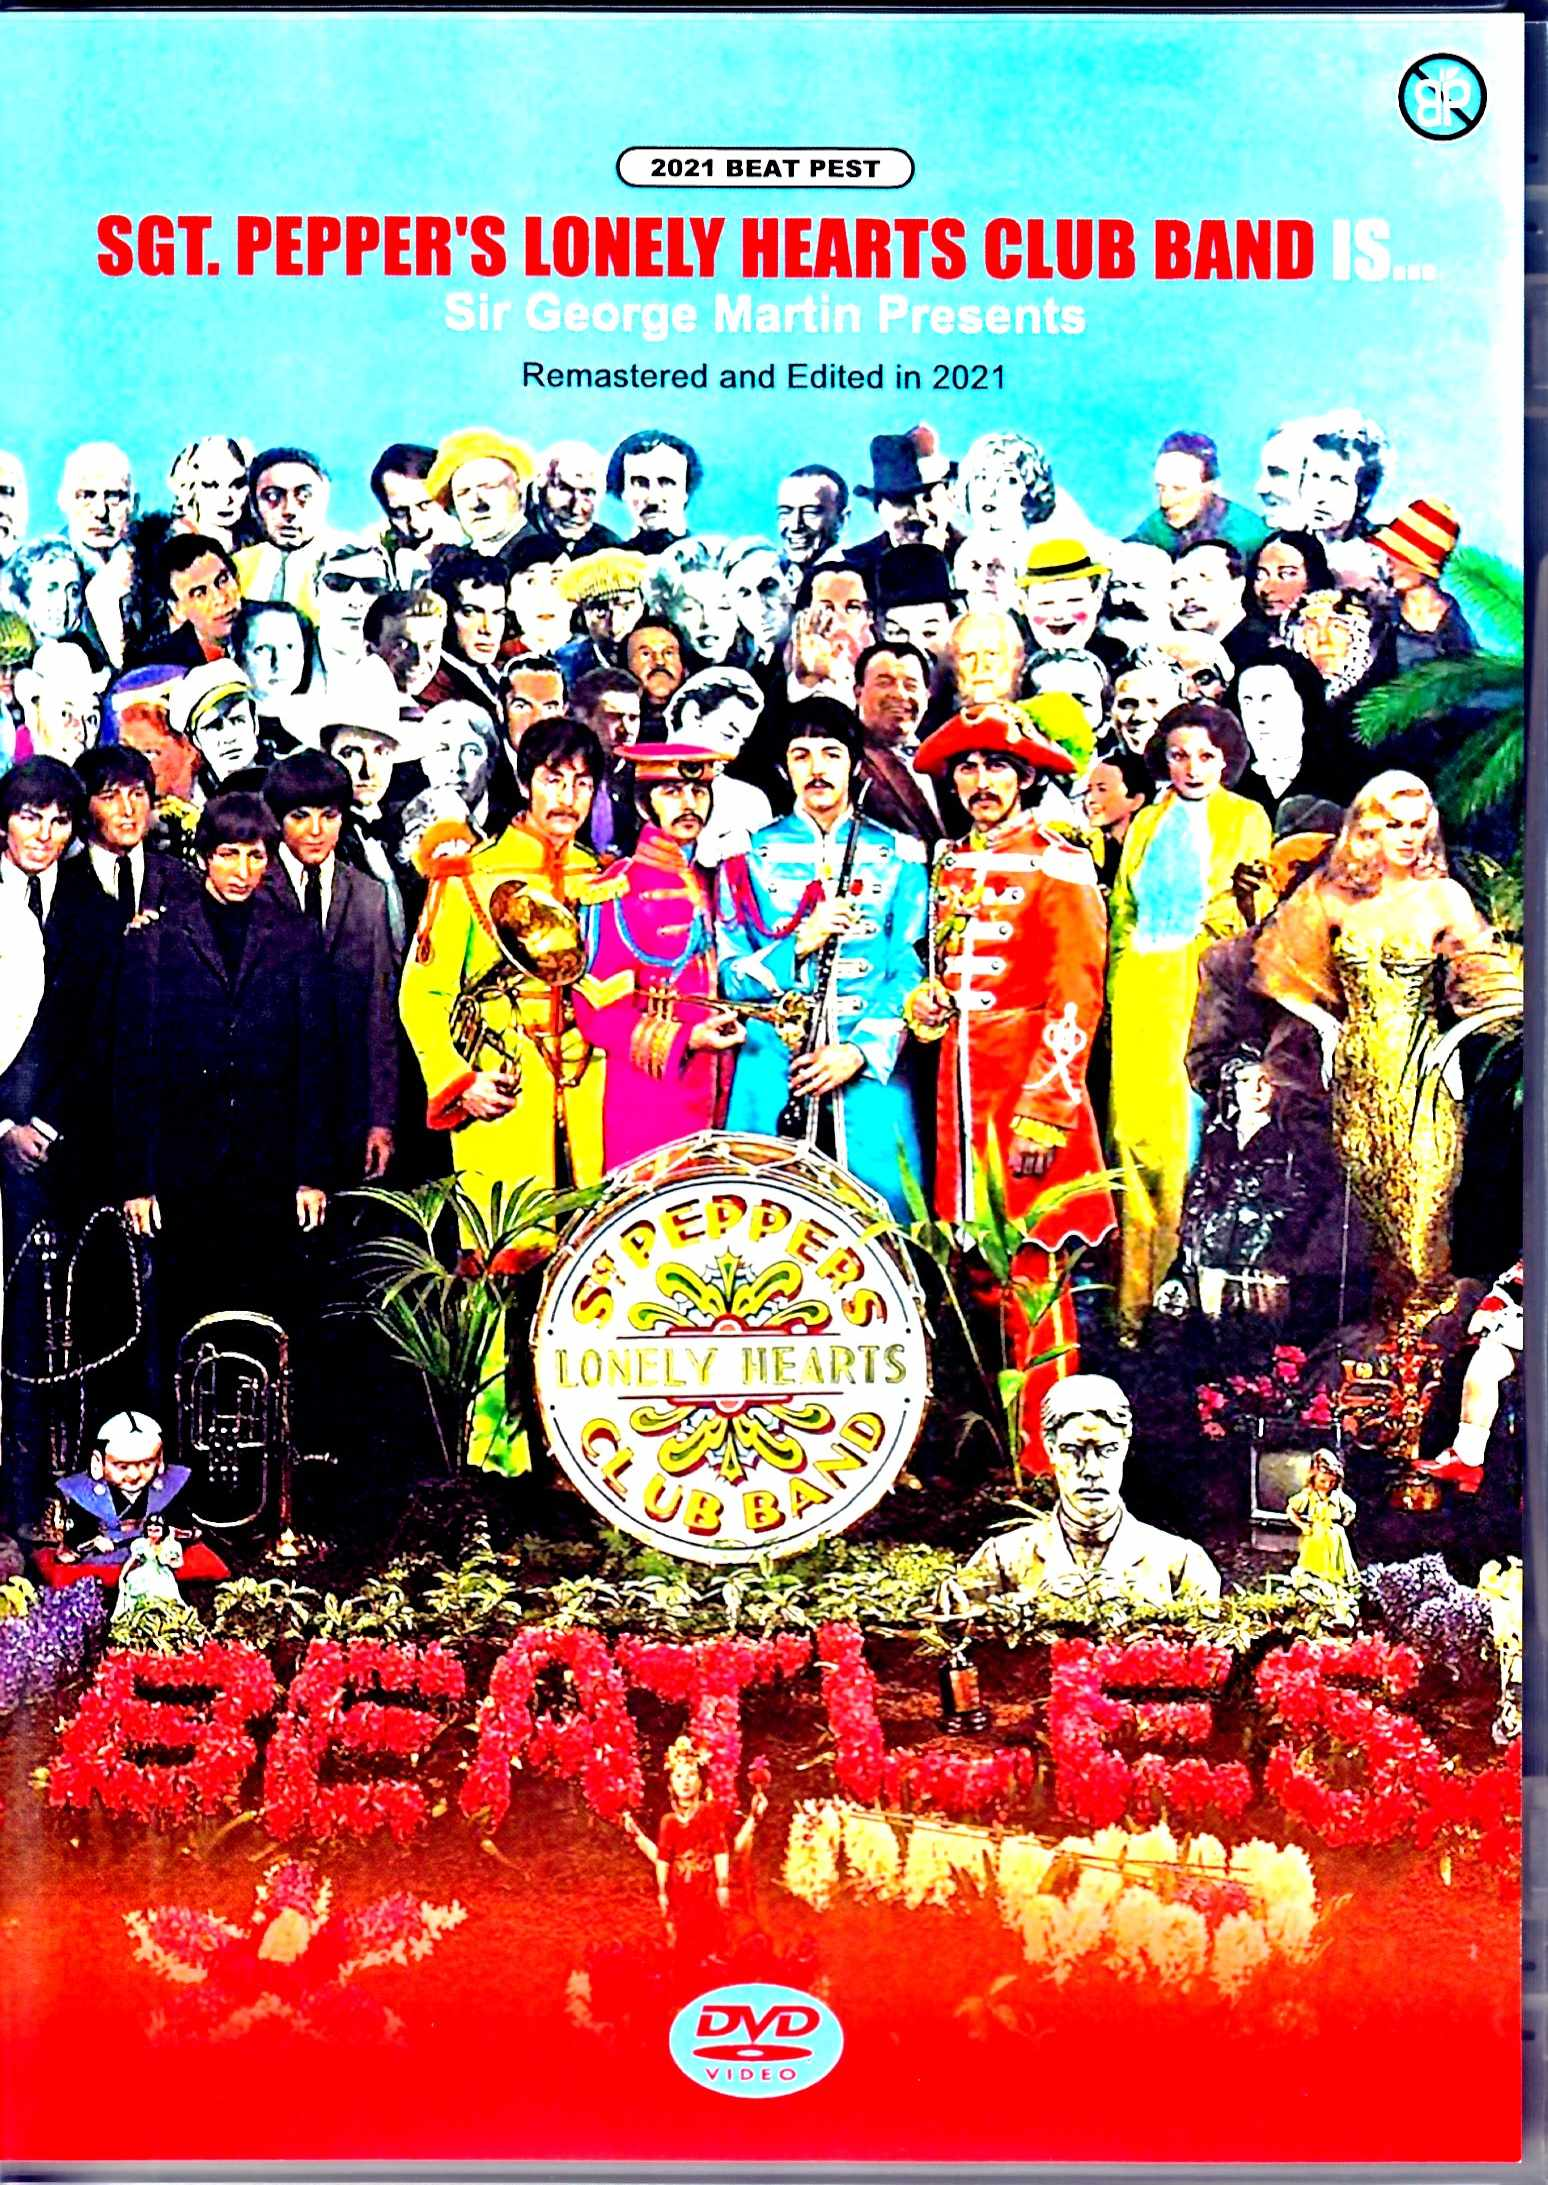 Beatles ビートルズ/サージェント・ペパーズ Making of Sgt. Pepper's Japanese Broadcast & more